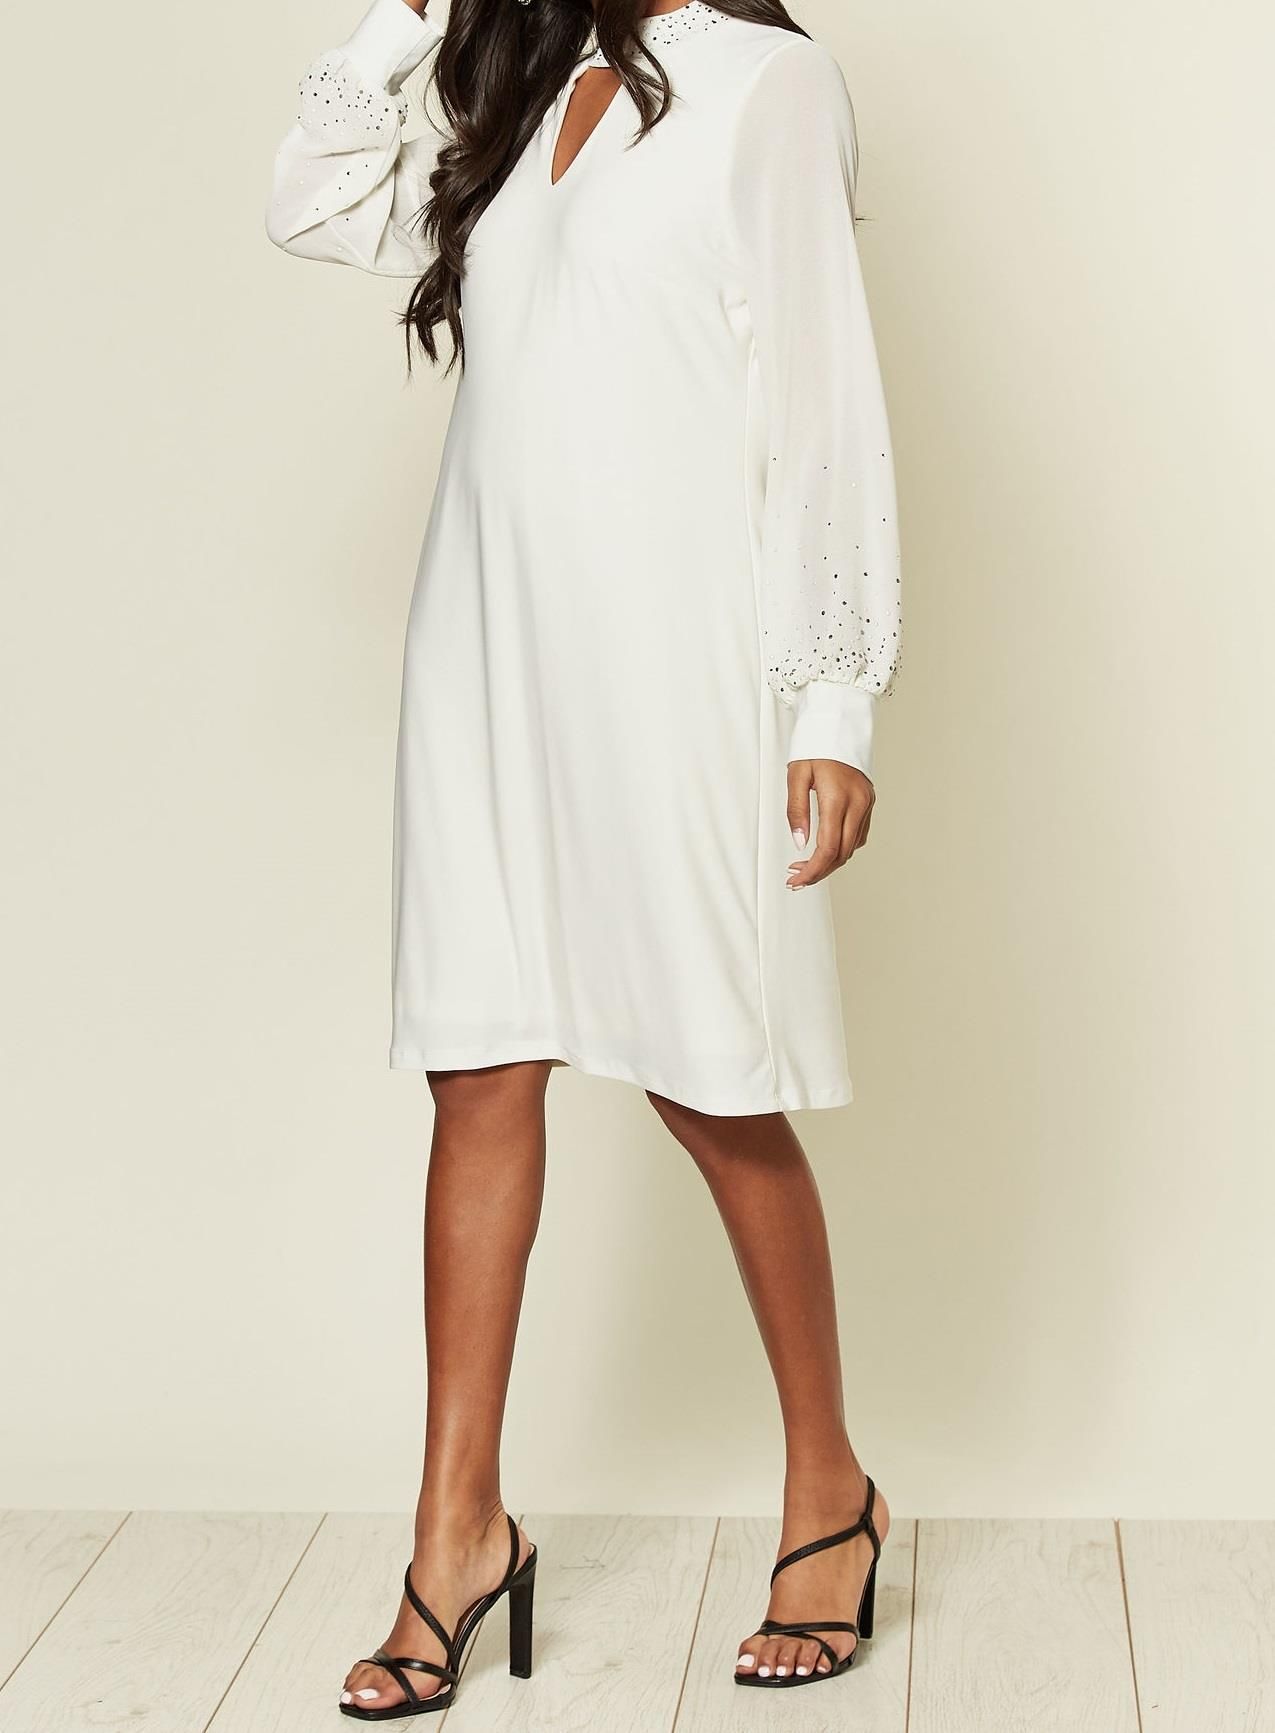 Anastasia Chiffon Embellished Lined Dress